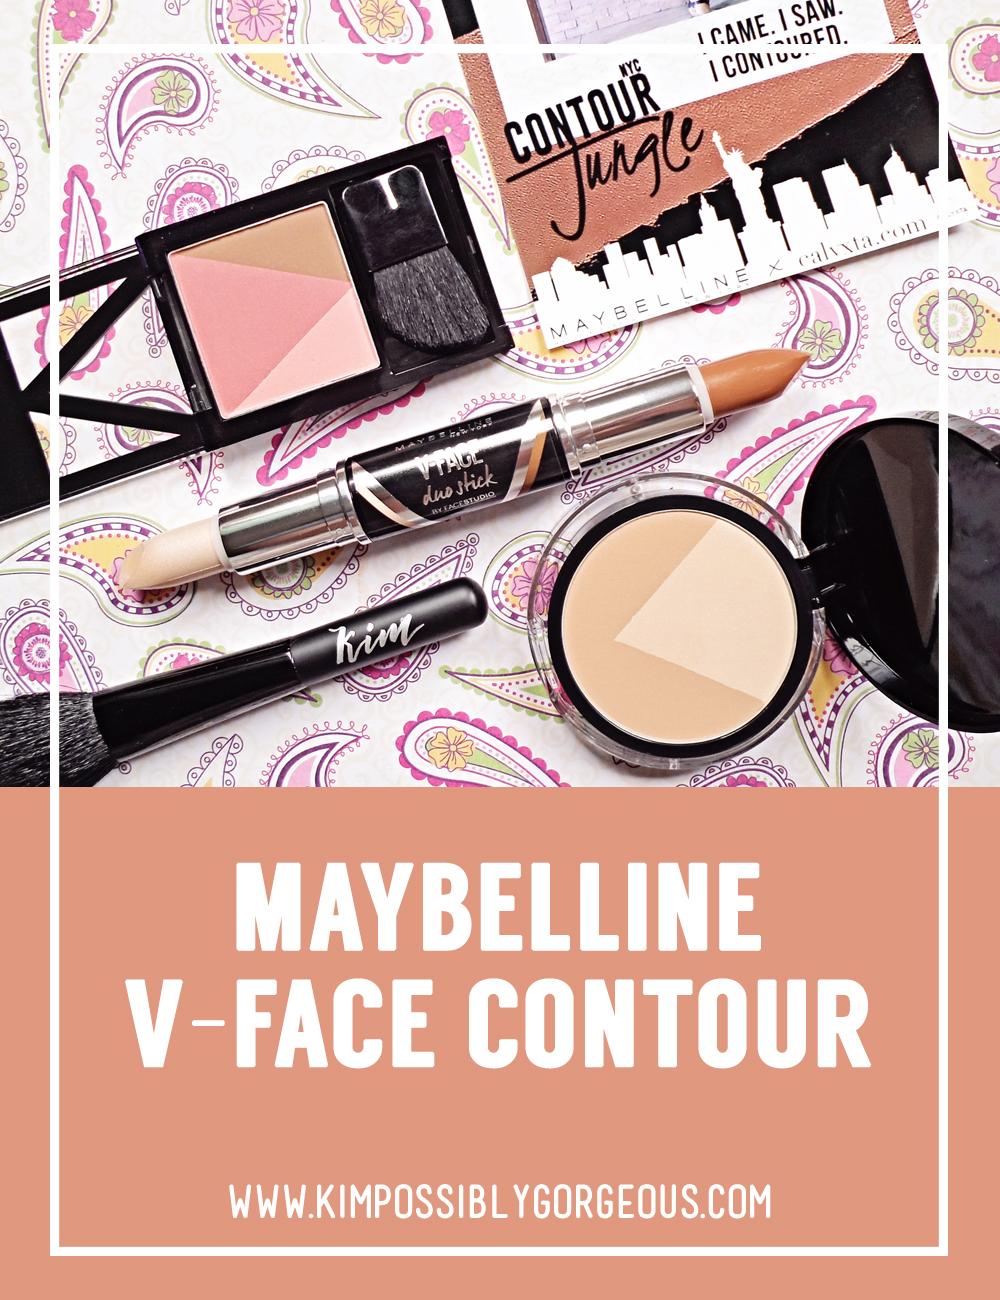 Contouringmadeeasy Maybelline V Face Contour Review Kimpossibly Duo Powder Contouring To My Katukayo Closest Translation Is Namesake Kim Kardashian Became Such A Big Thing In Almost Everyones Makeup Routine